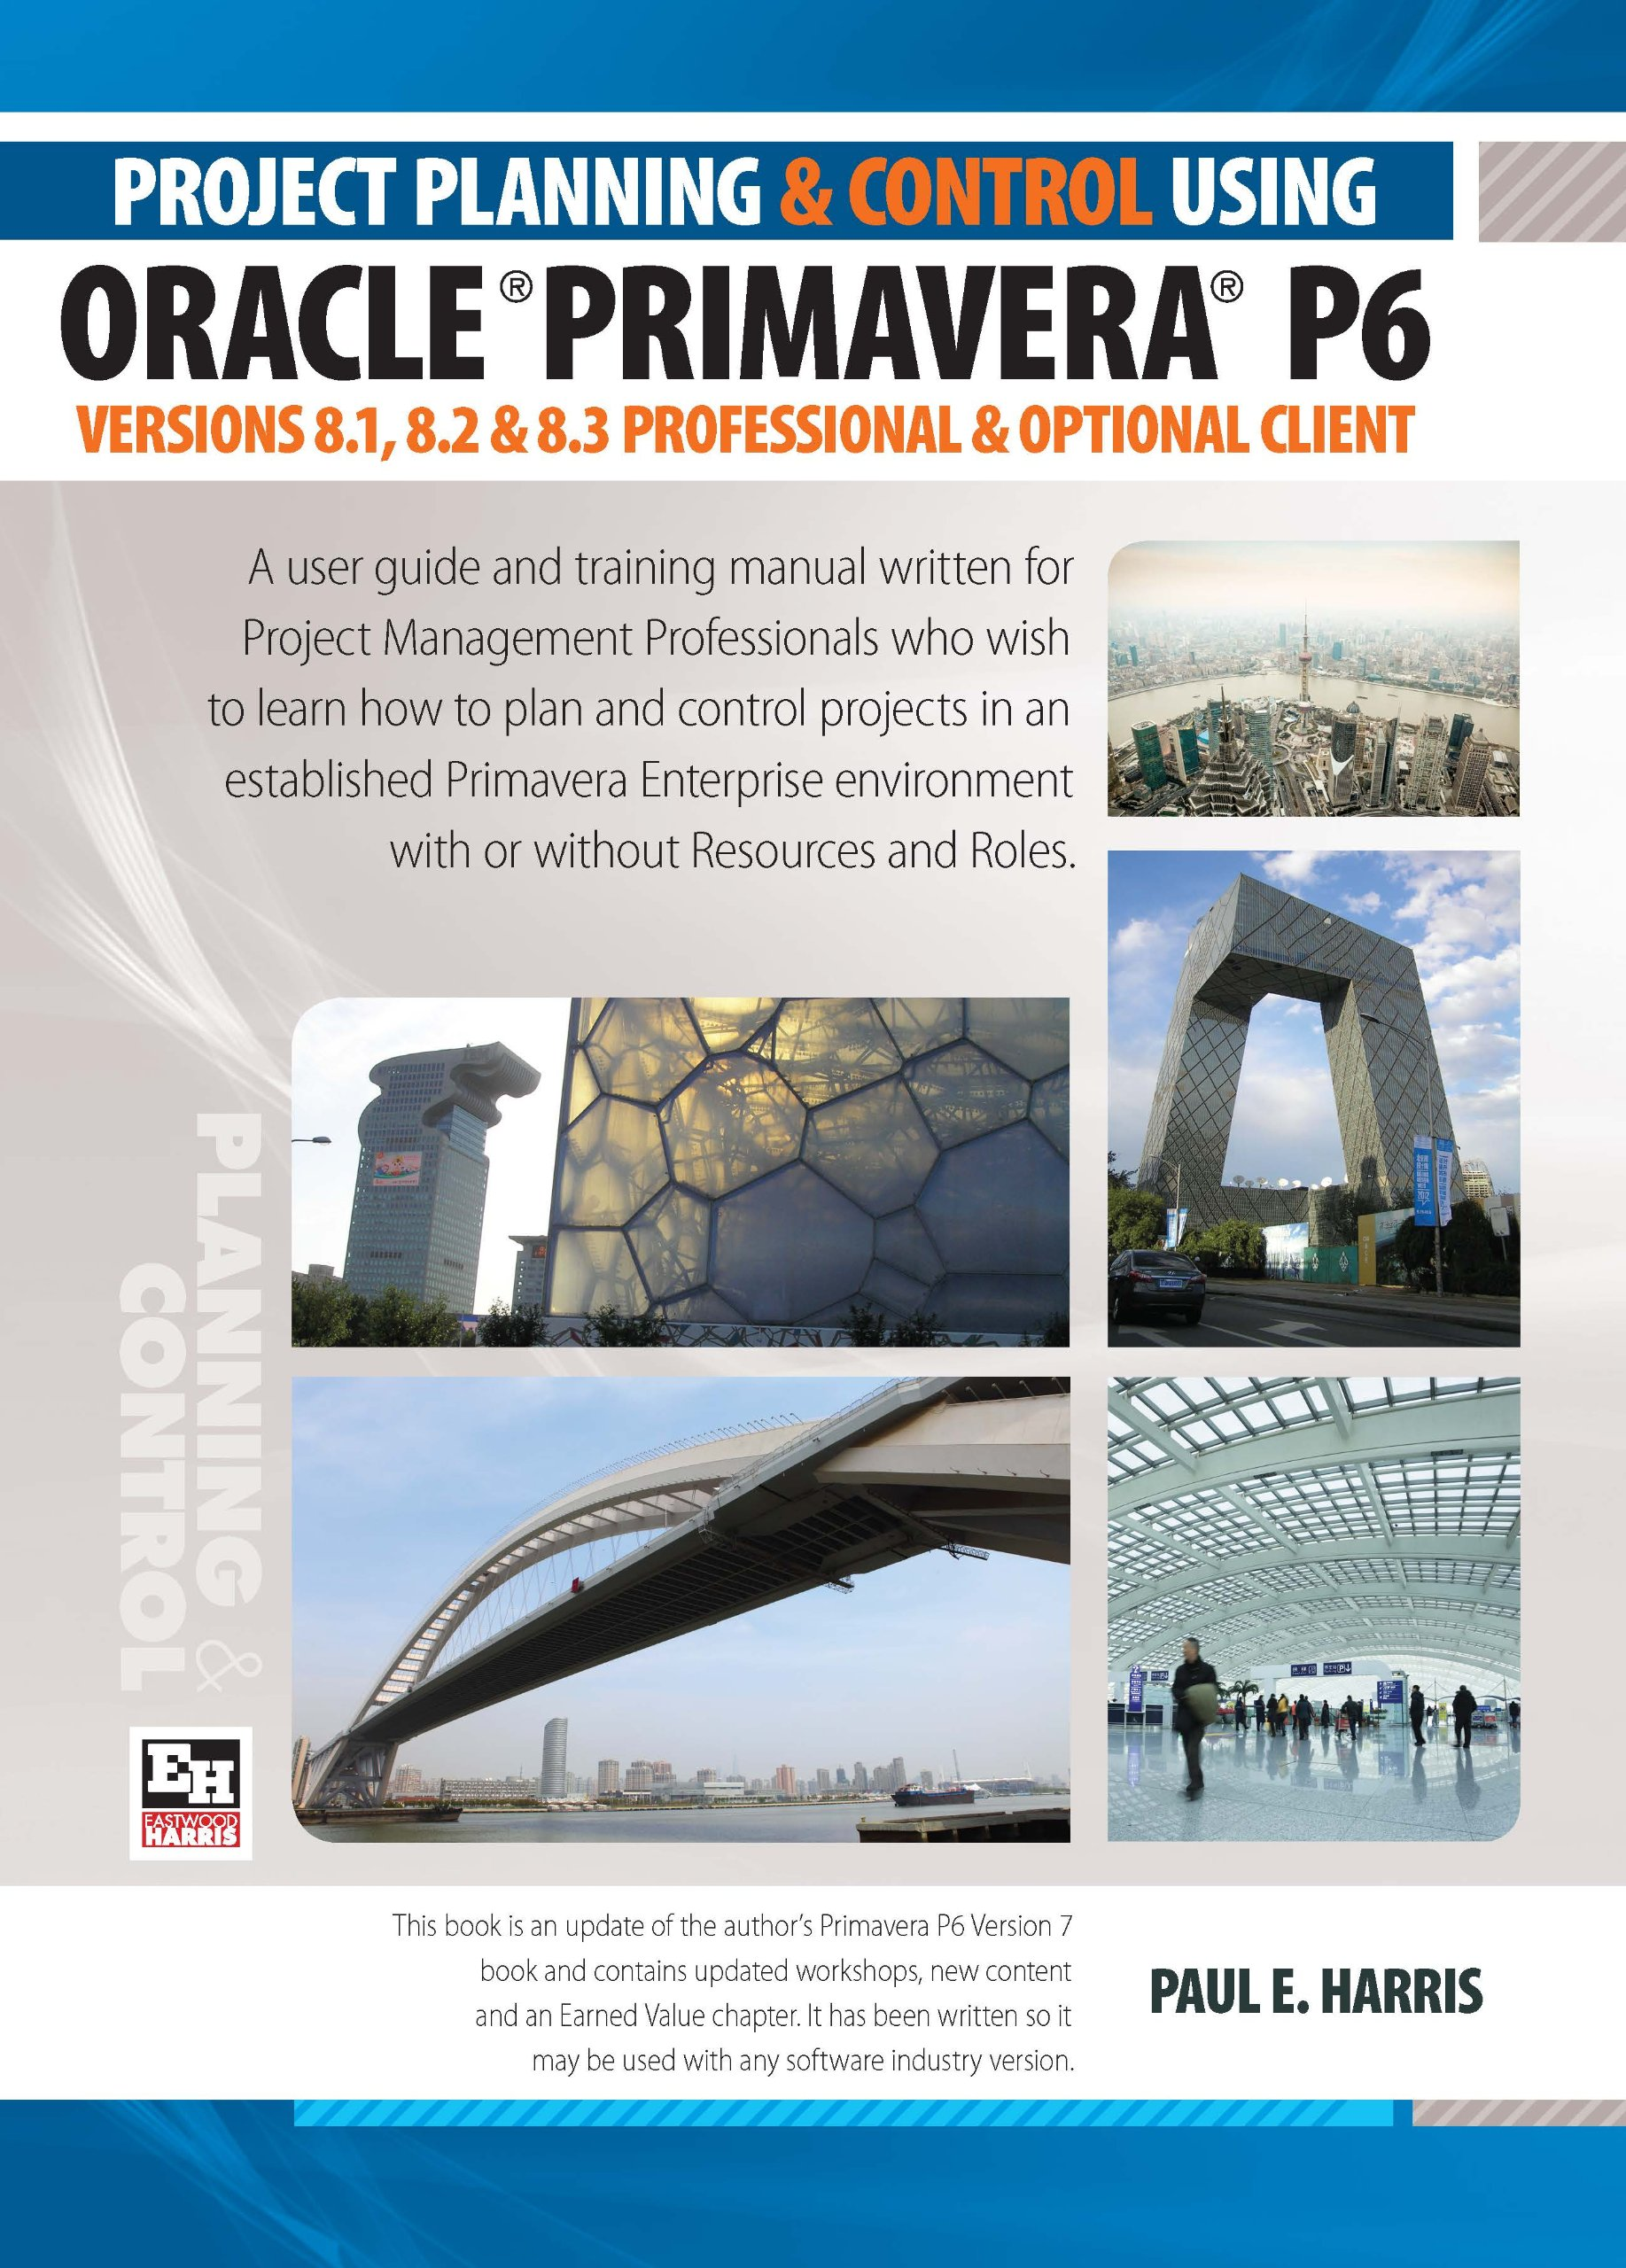 Amazon.com: Project Planning and Control Using Oracle Primavera P6 Versions  8.1, 8.2 & 8.3 Professional Client & Optional Client (9781921059810): Paul  E. ...